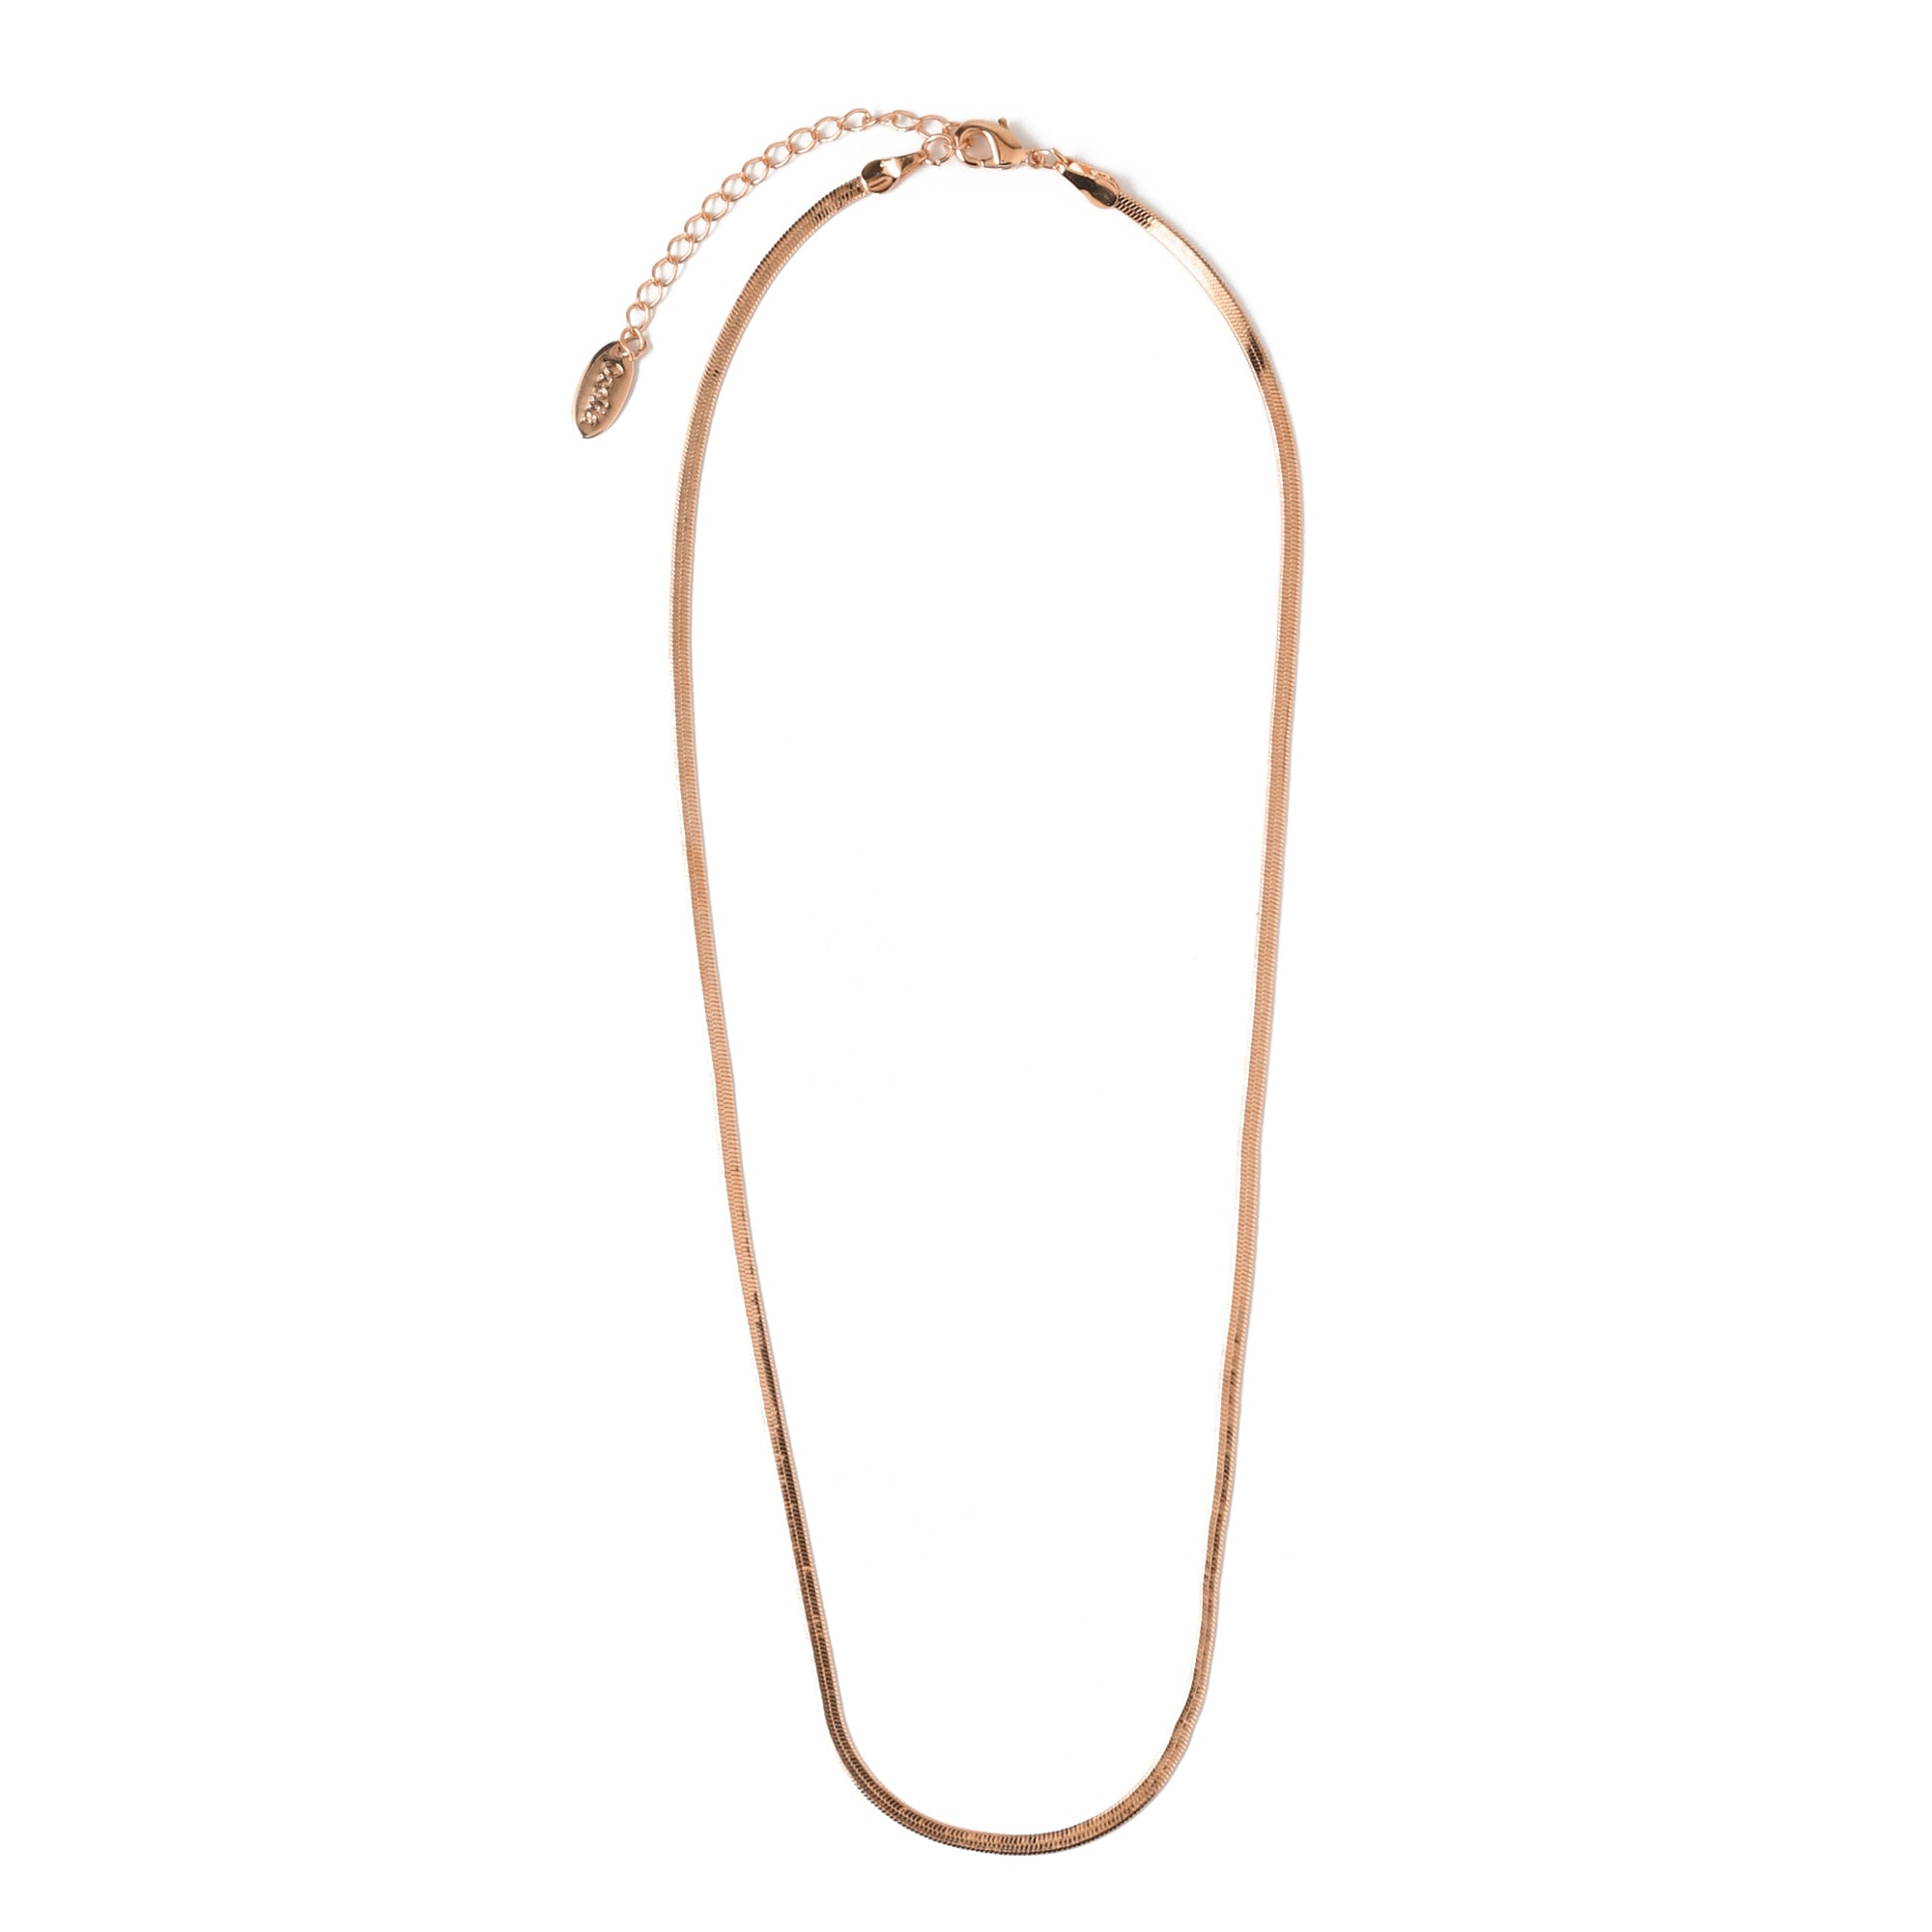 Flat Snake Chain Necklace - Rose Gold